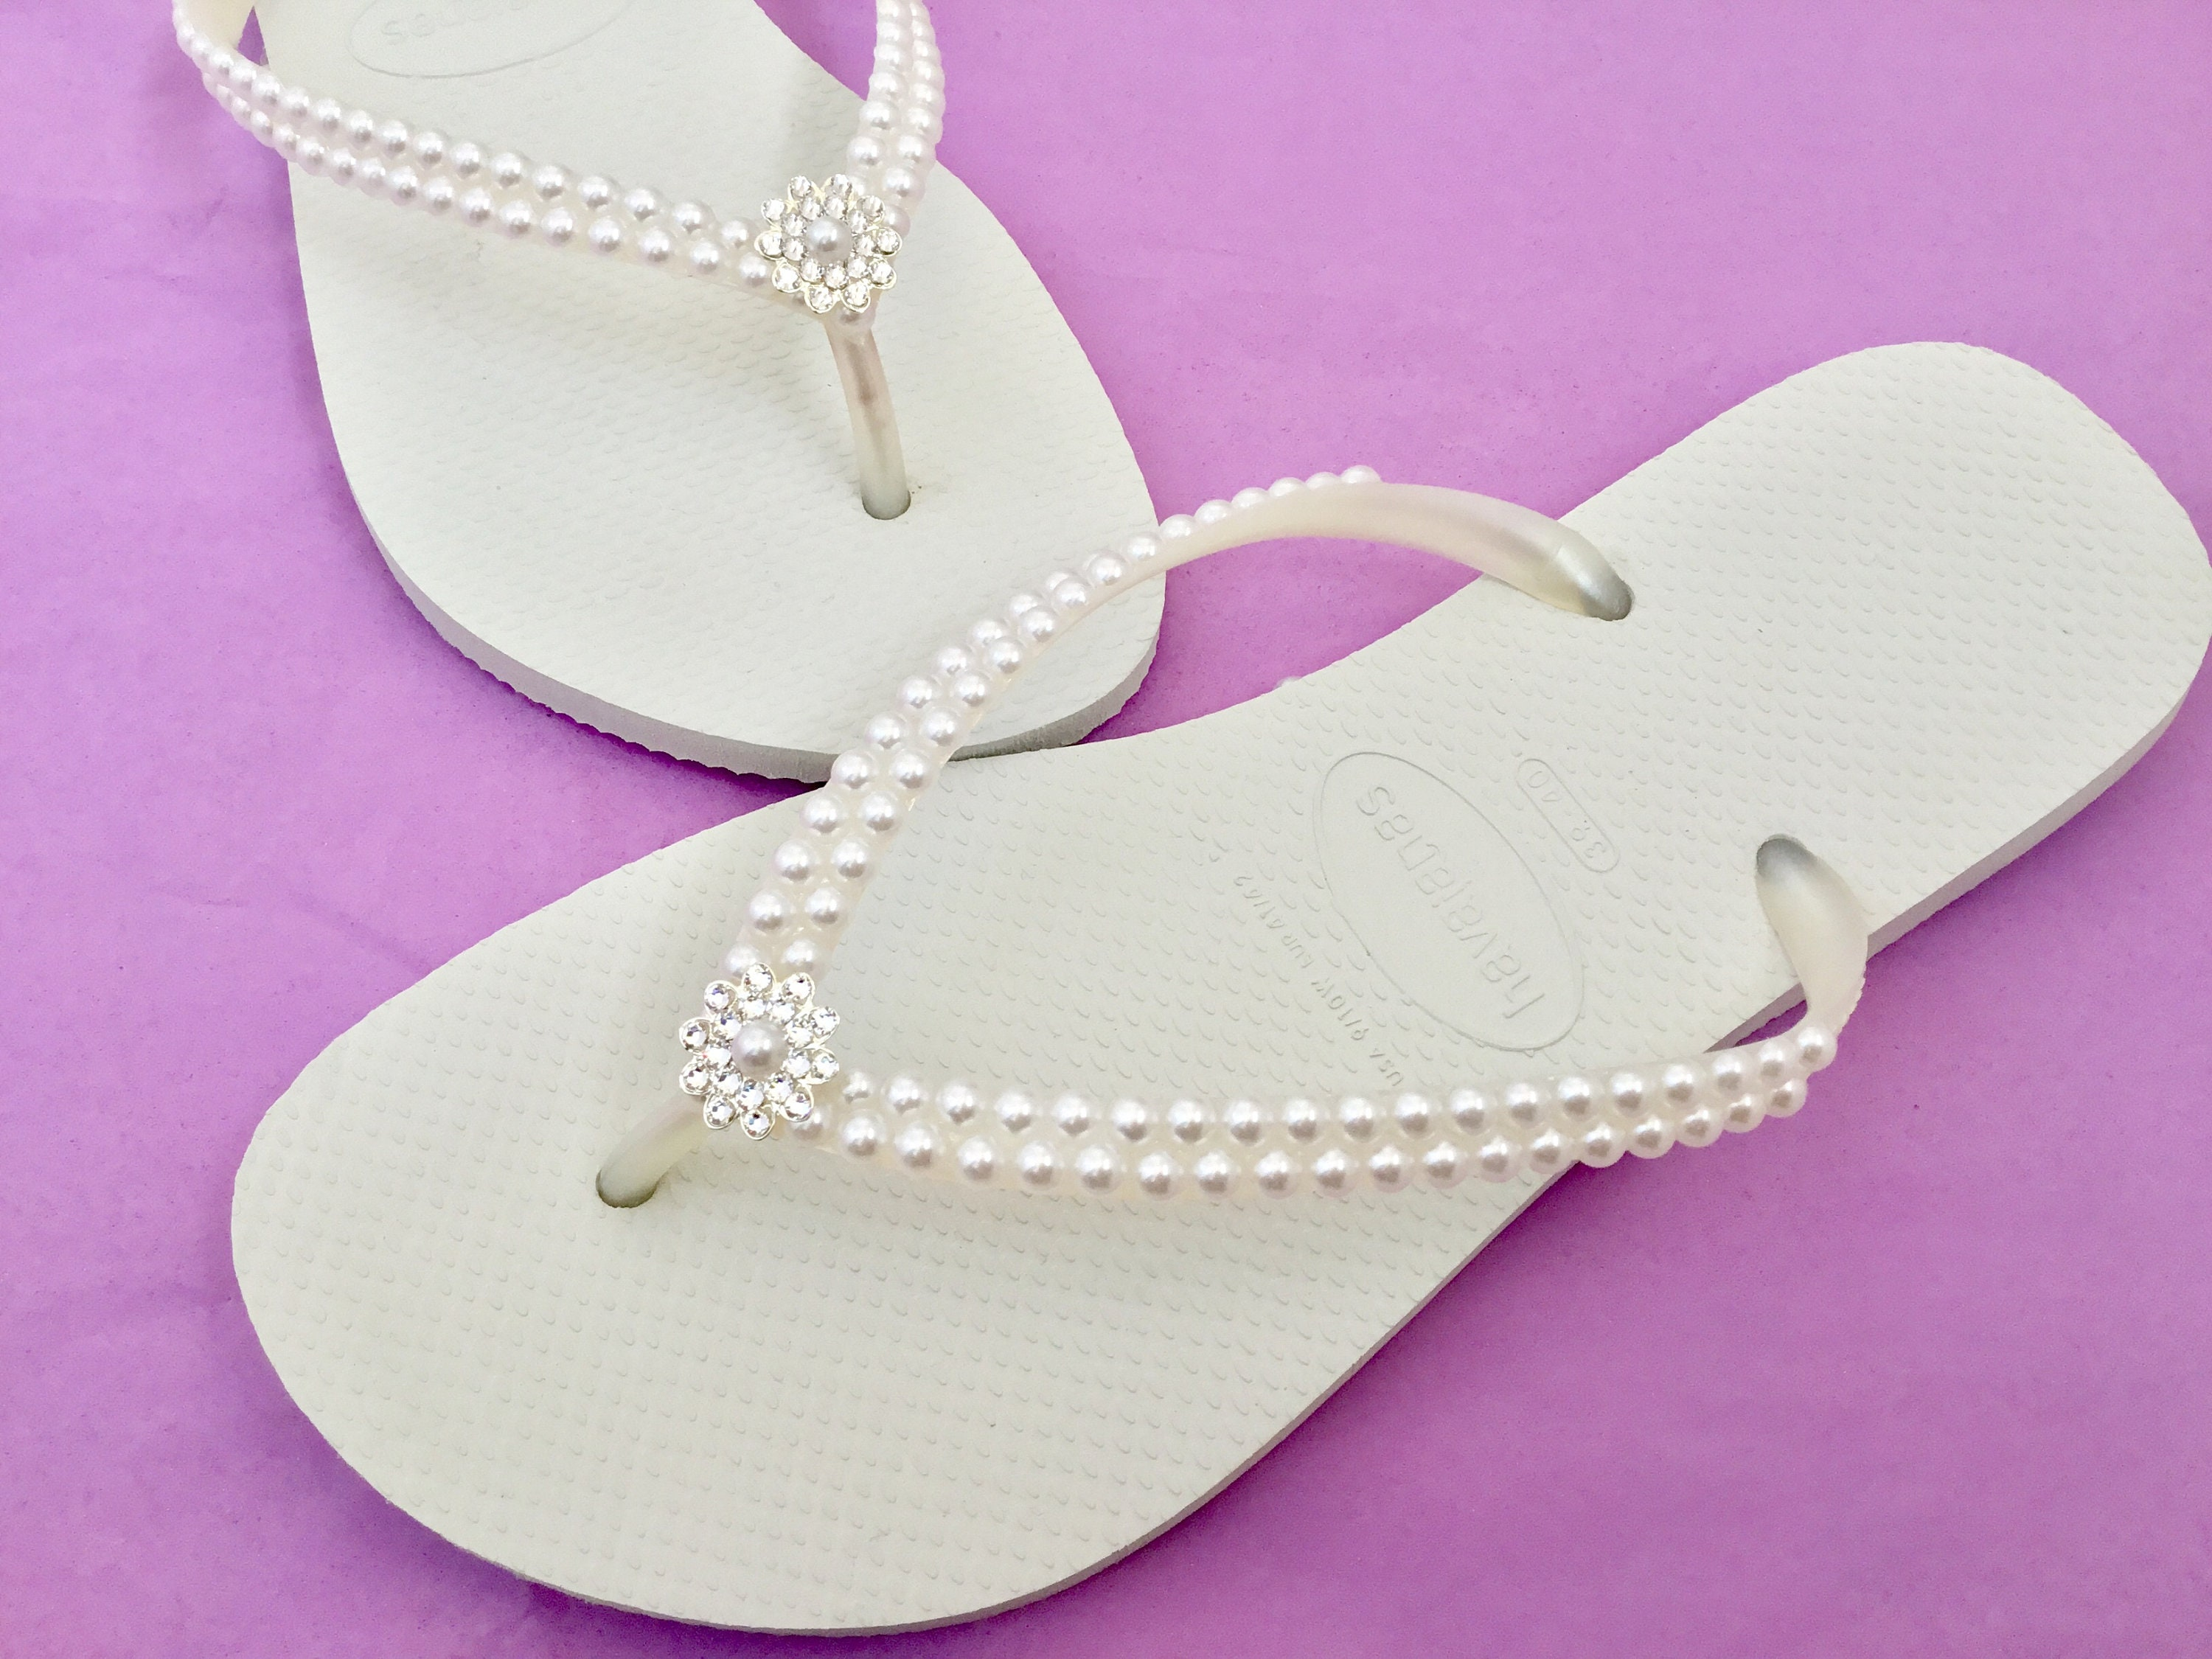 1a90276f4 White Pearl Havaianas Slim Flip Flops Bridal Crystal Rose w Swarovski  Rhinestone Bling Bride Silver BridesMaid Beach Wedding shoes